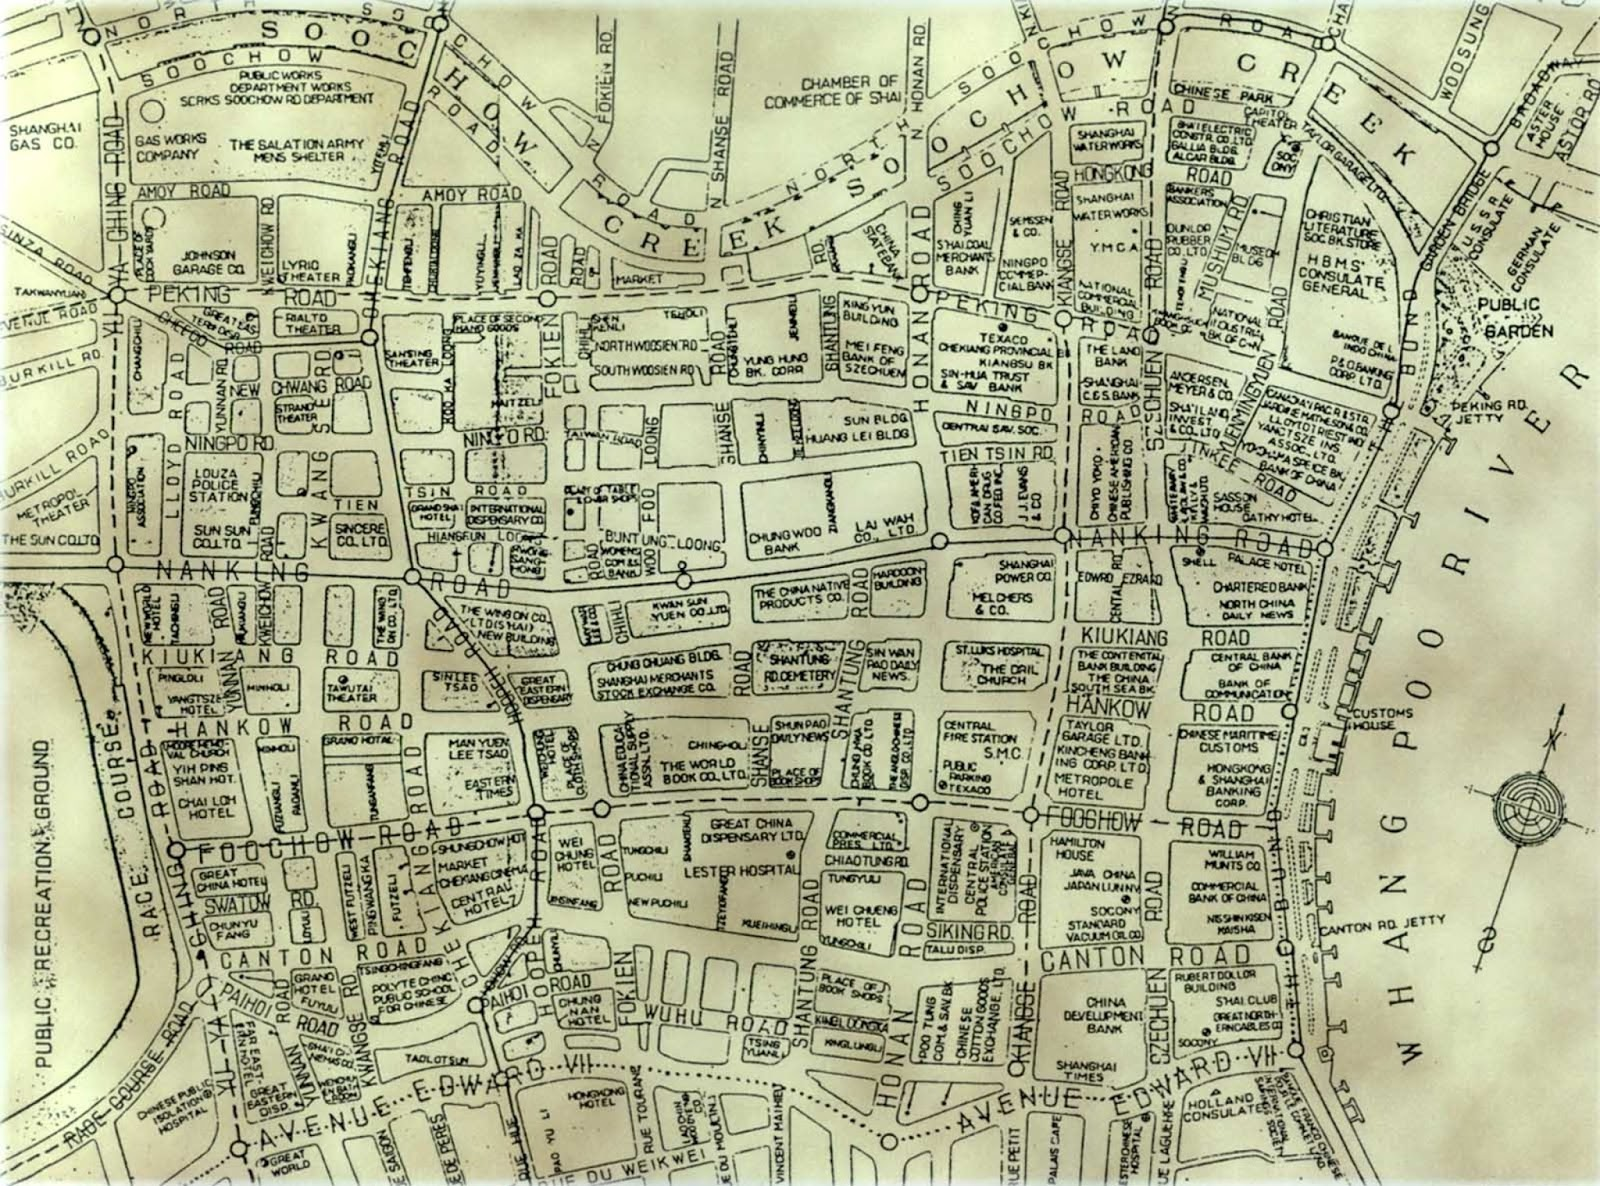 MapCortex Blog Shanghai City Center Map from the 19th Century